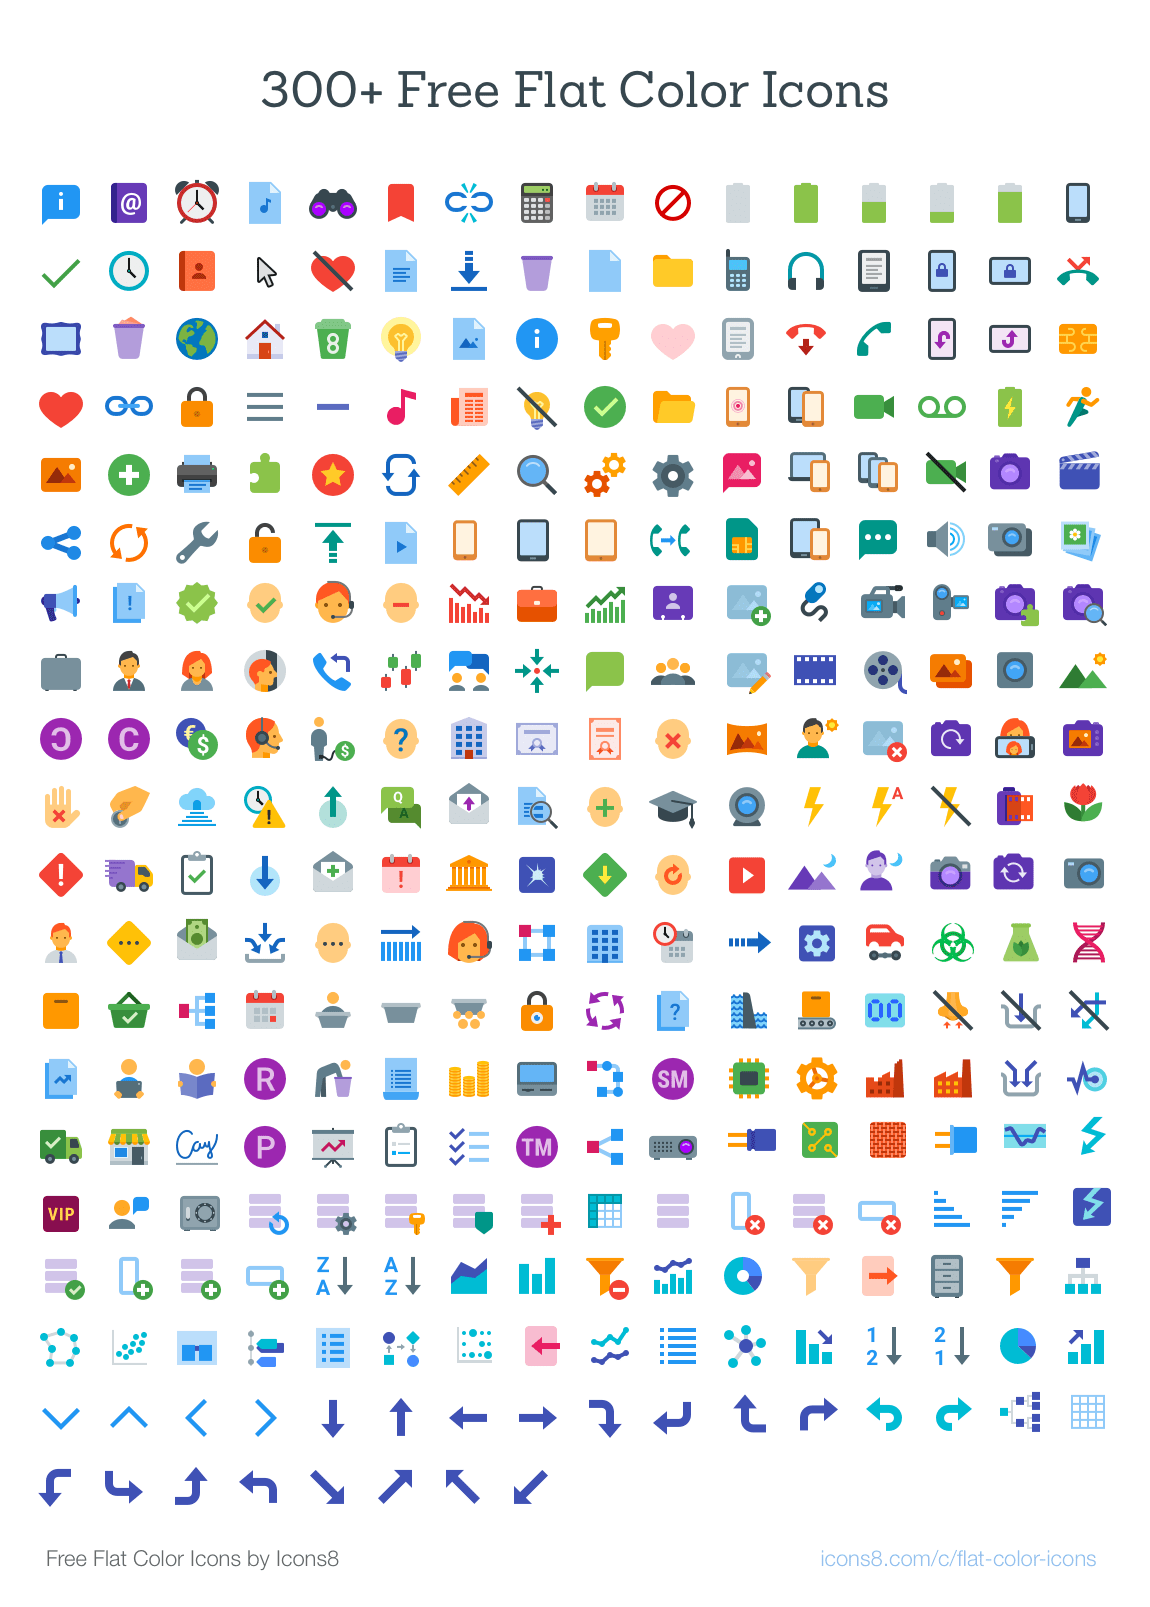 300 Free Flat Color Icons